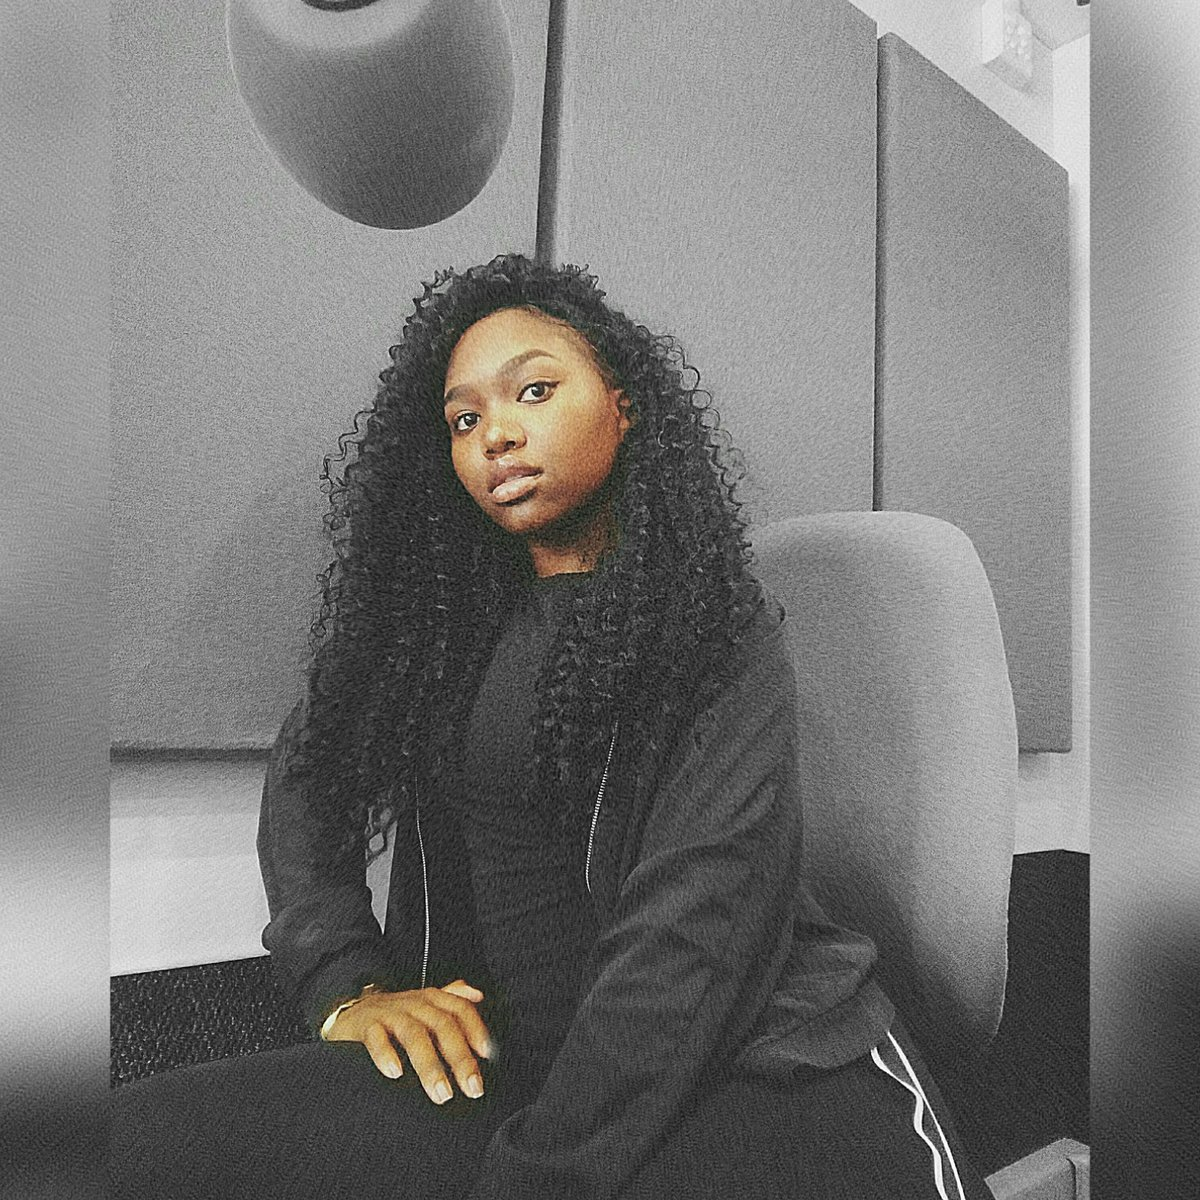 Black excellence: Tweep shows she is the architect of her own future